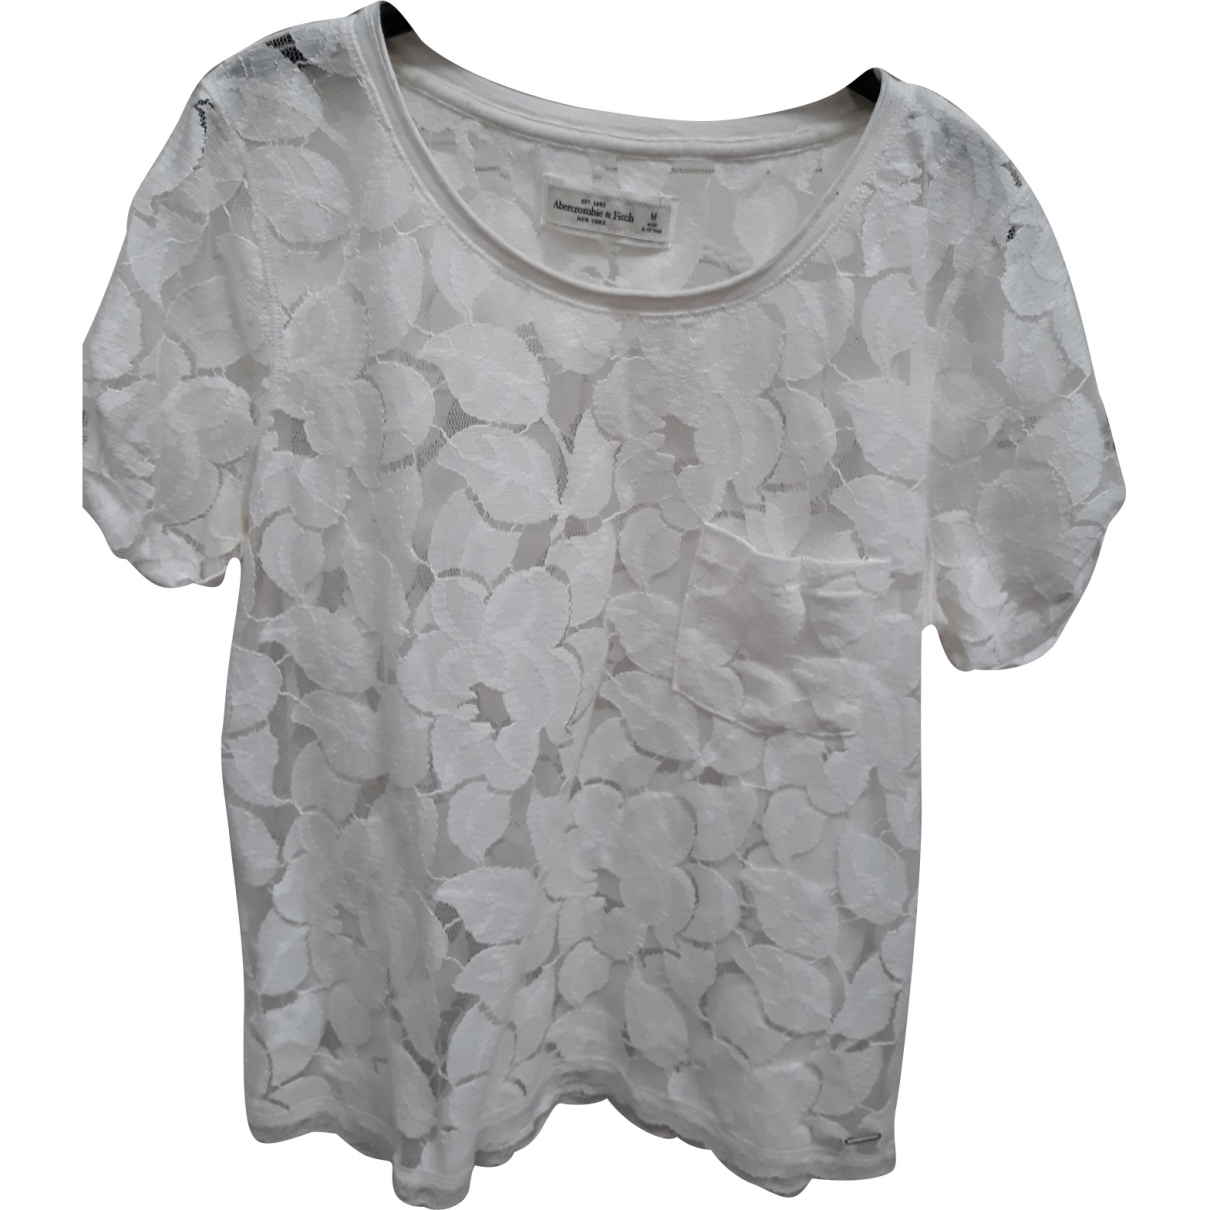 Abercrombie & Fitch \N Top in  Weiss Viskose